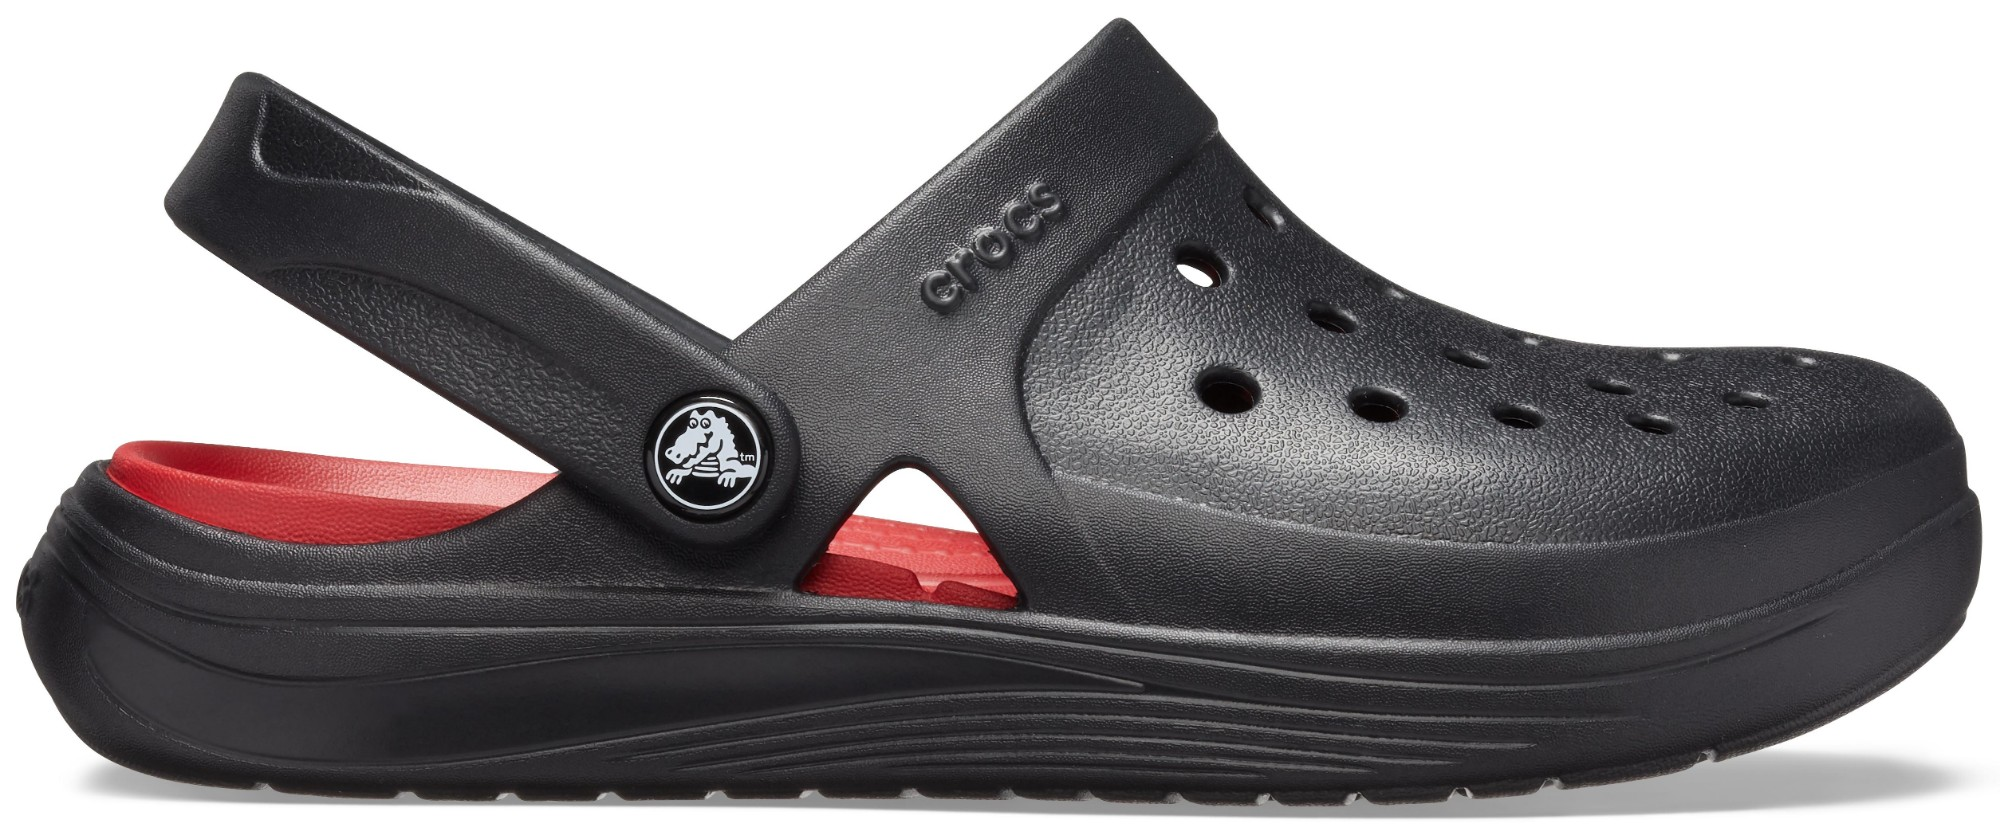 Crocs™ Reviva Clog Black/Pepper 43,5